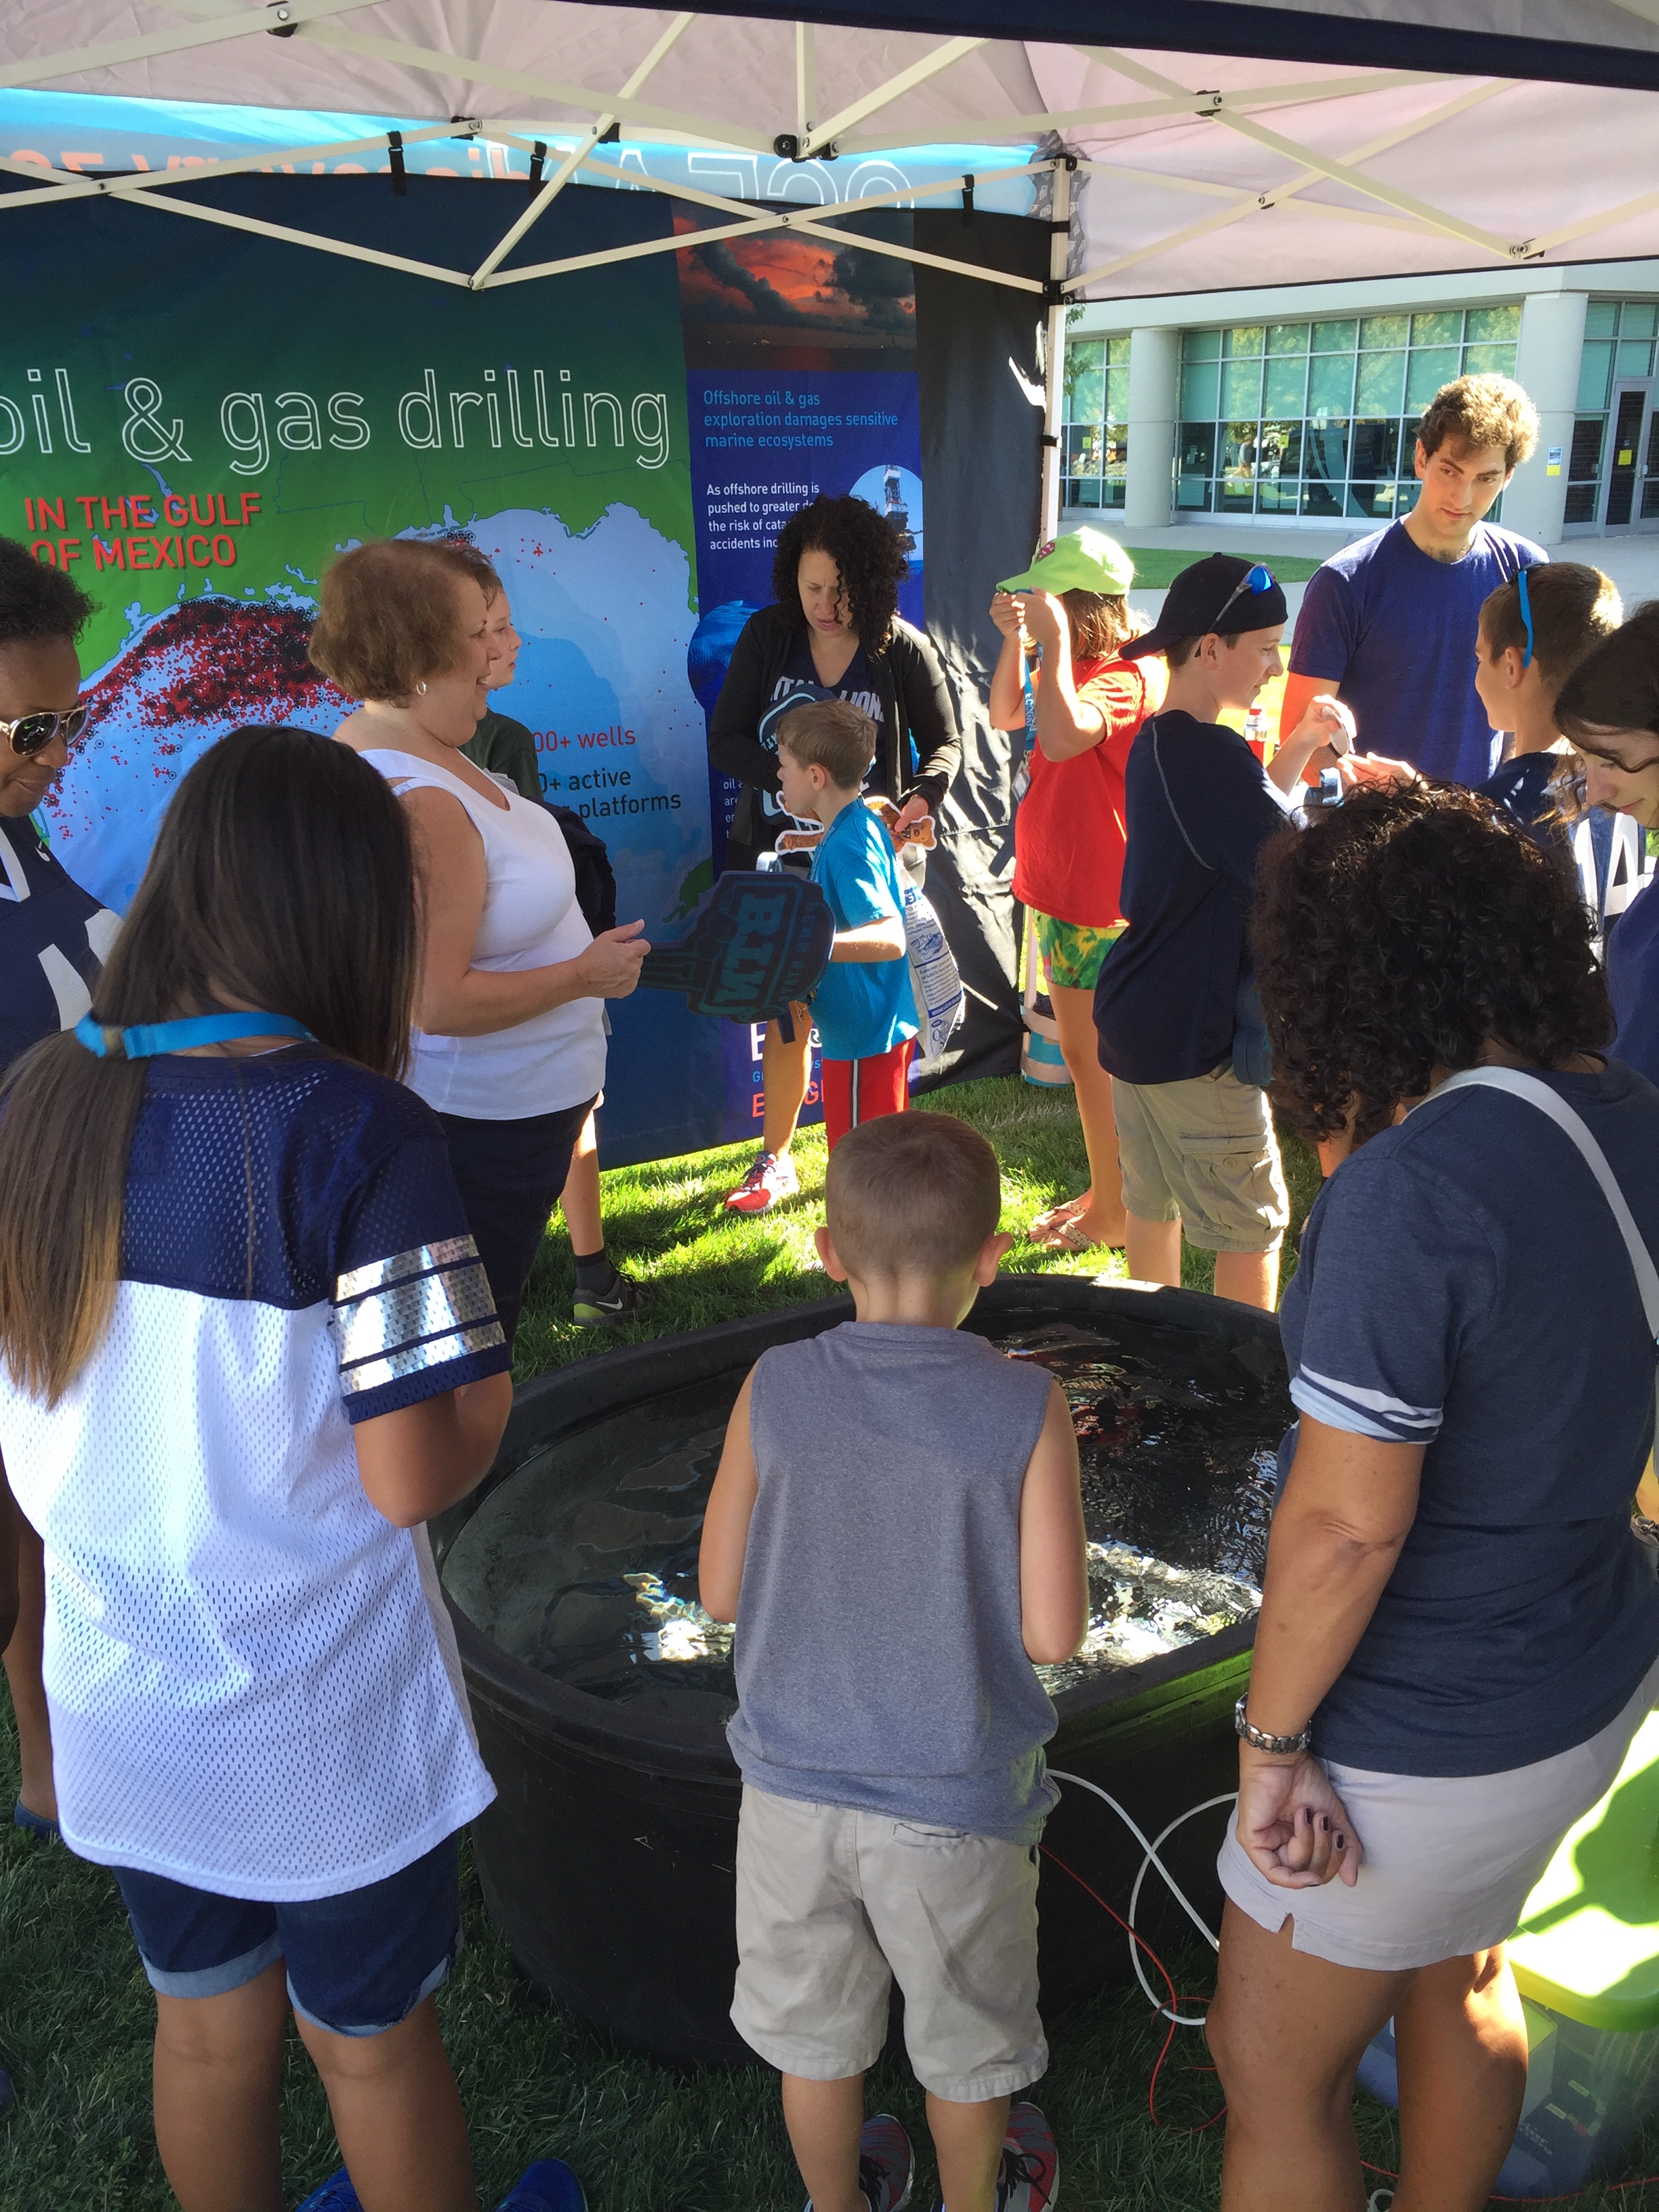 <div style='color:#000000;'><br /><br /><h2>Penn State Fan Fest 2016- Visitors exploring the Ocean Discovery Zone before the Sept 3rd, 2016 Penn State vs Kent State game</h2>(c) ECOGIG</div>